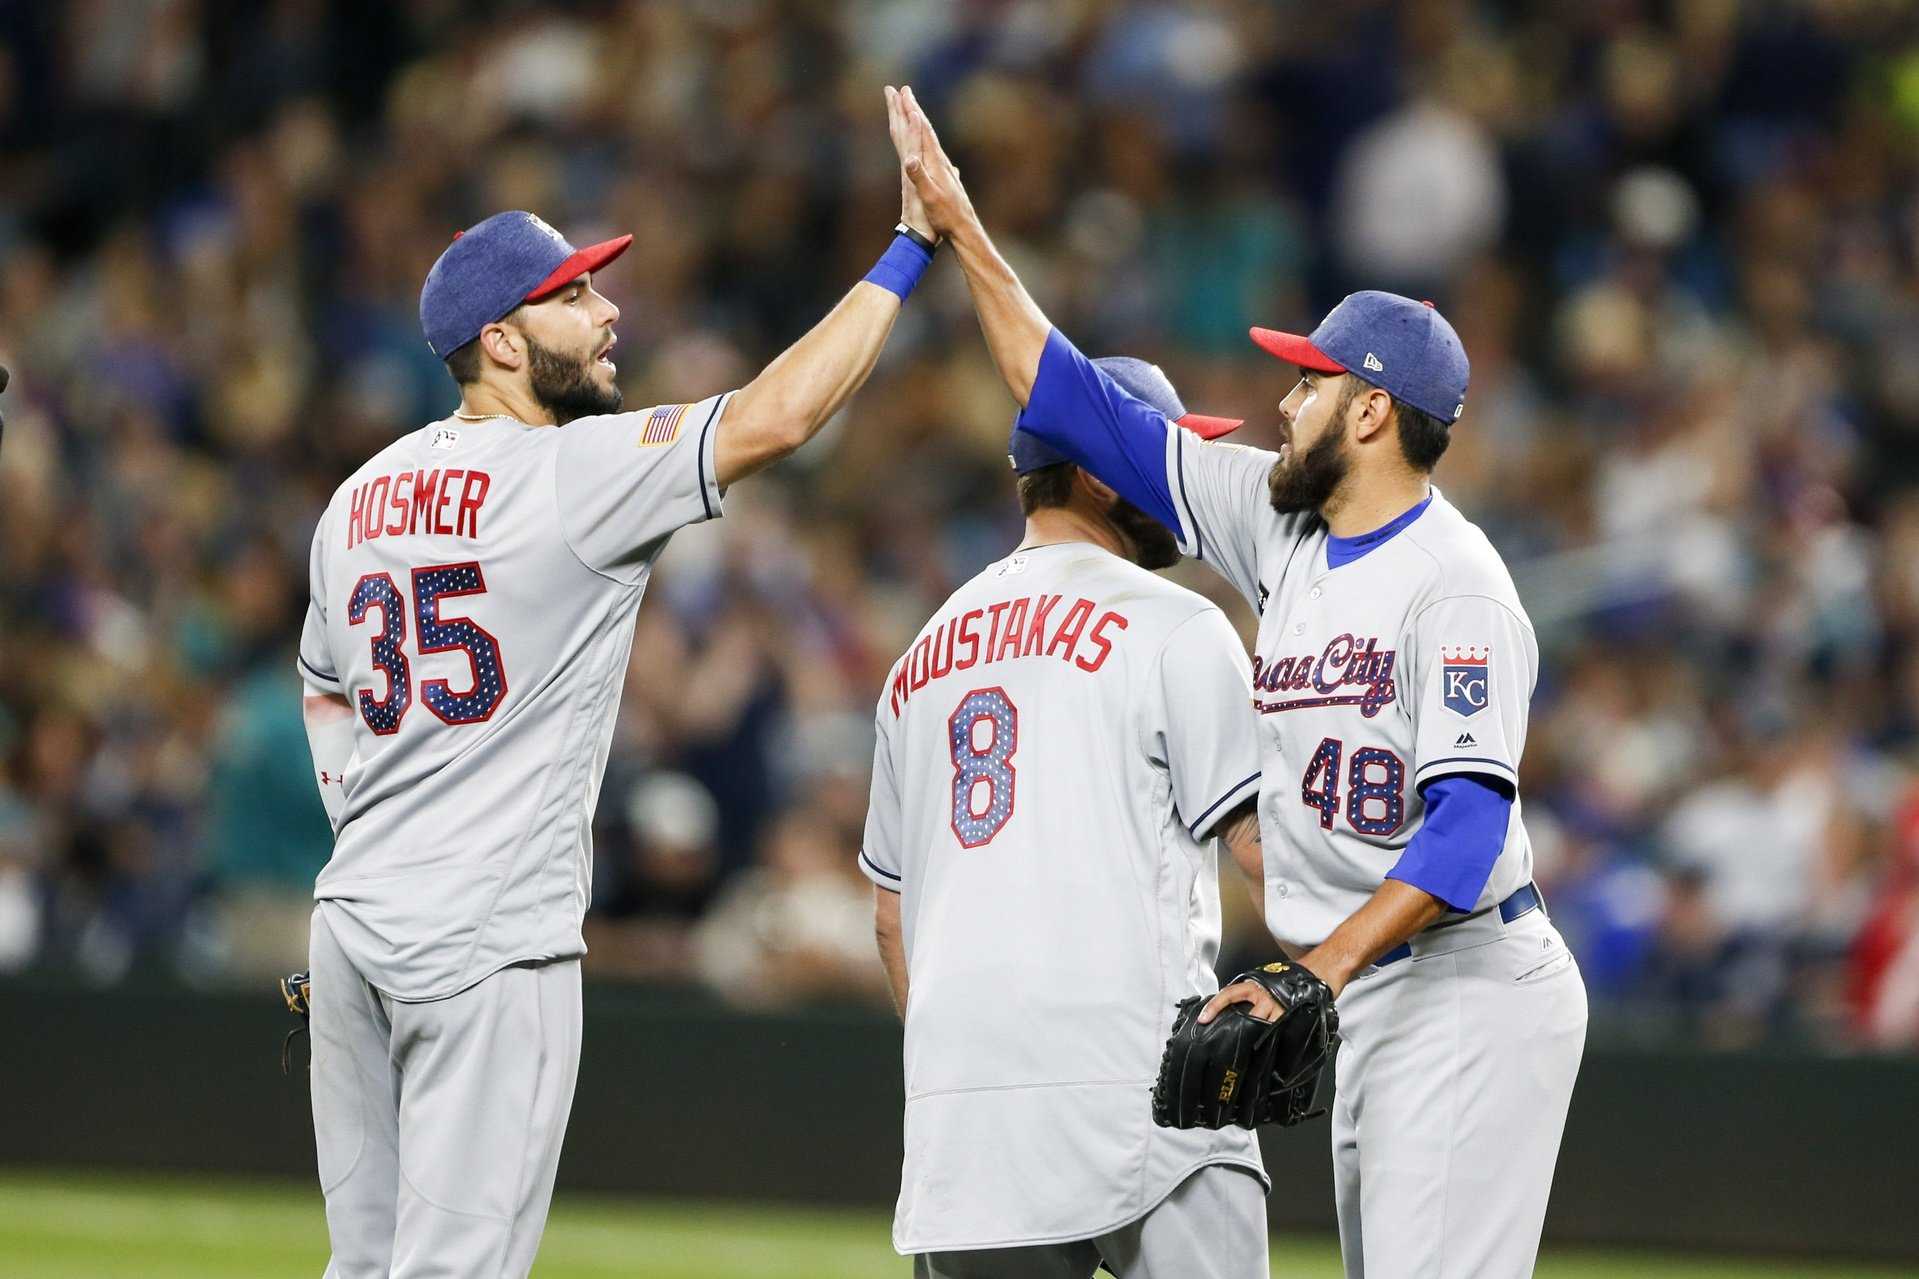 Jul 3, 2017; Seattle, WA, USA; Kansas City Royals relief pitcher Joakim Soria (48) exchanges a high five with first baseman Eric Hosmer (35) following the final out of a 3-1 victory against the Seattle Mariners at Safeco Field. Mandatory Credit: Joe Nicholson-USA TODAY Sports